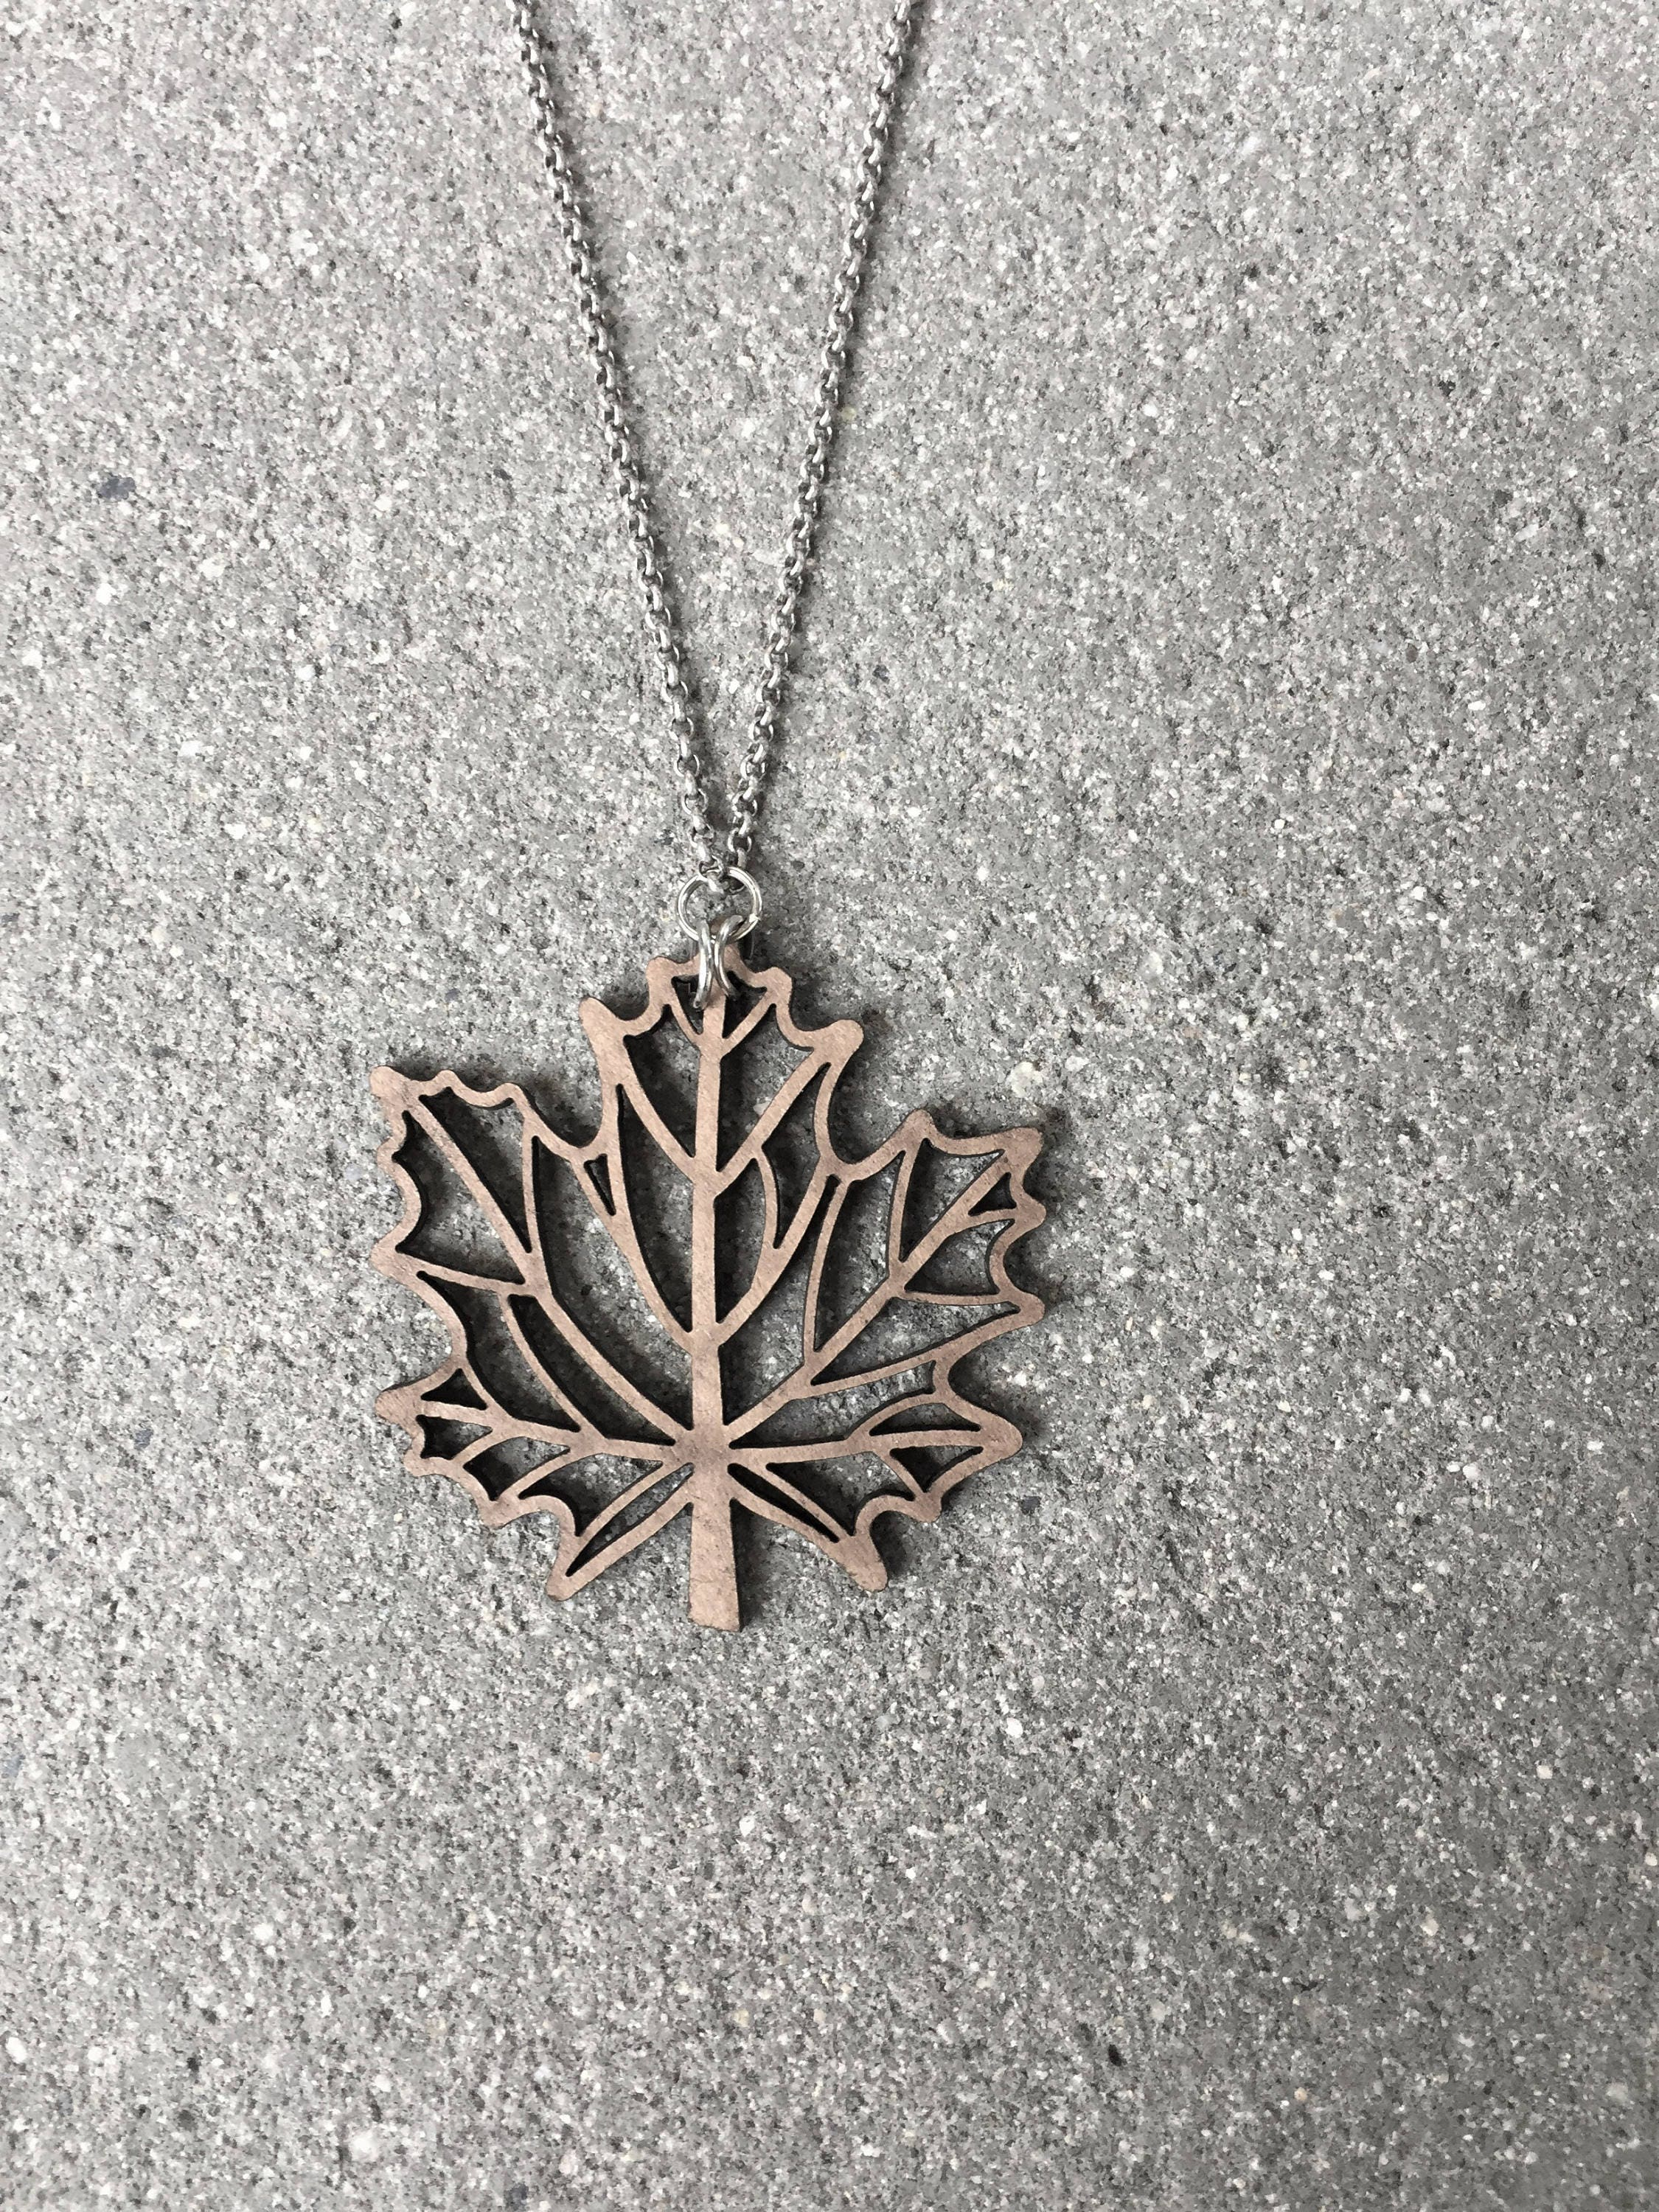 hollow item titanium necklaces chain gold pendant durable design from noble stainless charm classic maple color leaf jewelry in women necklace